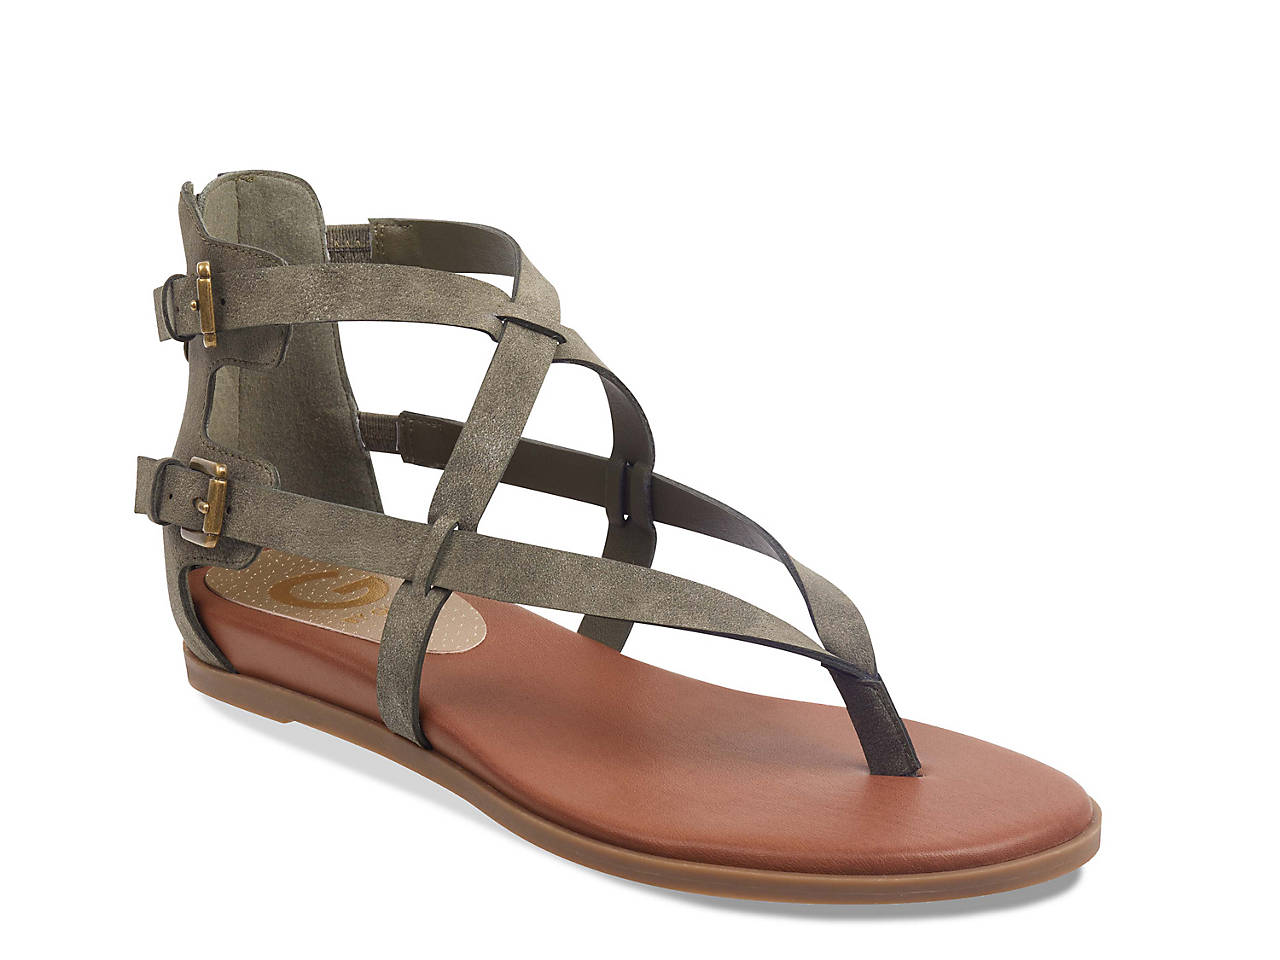 a58c3ec600fb G by GUESS Cave Gladiator Sandal Women s Shoes